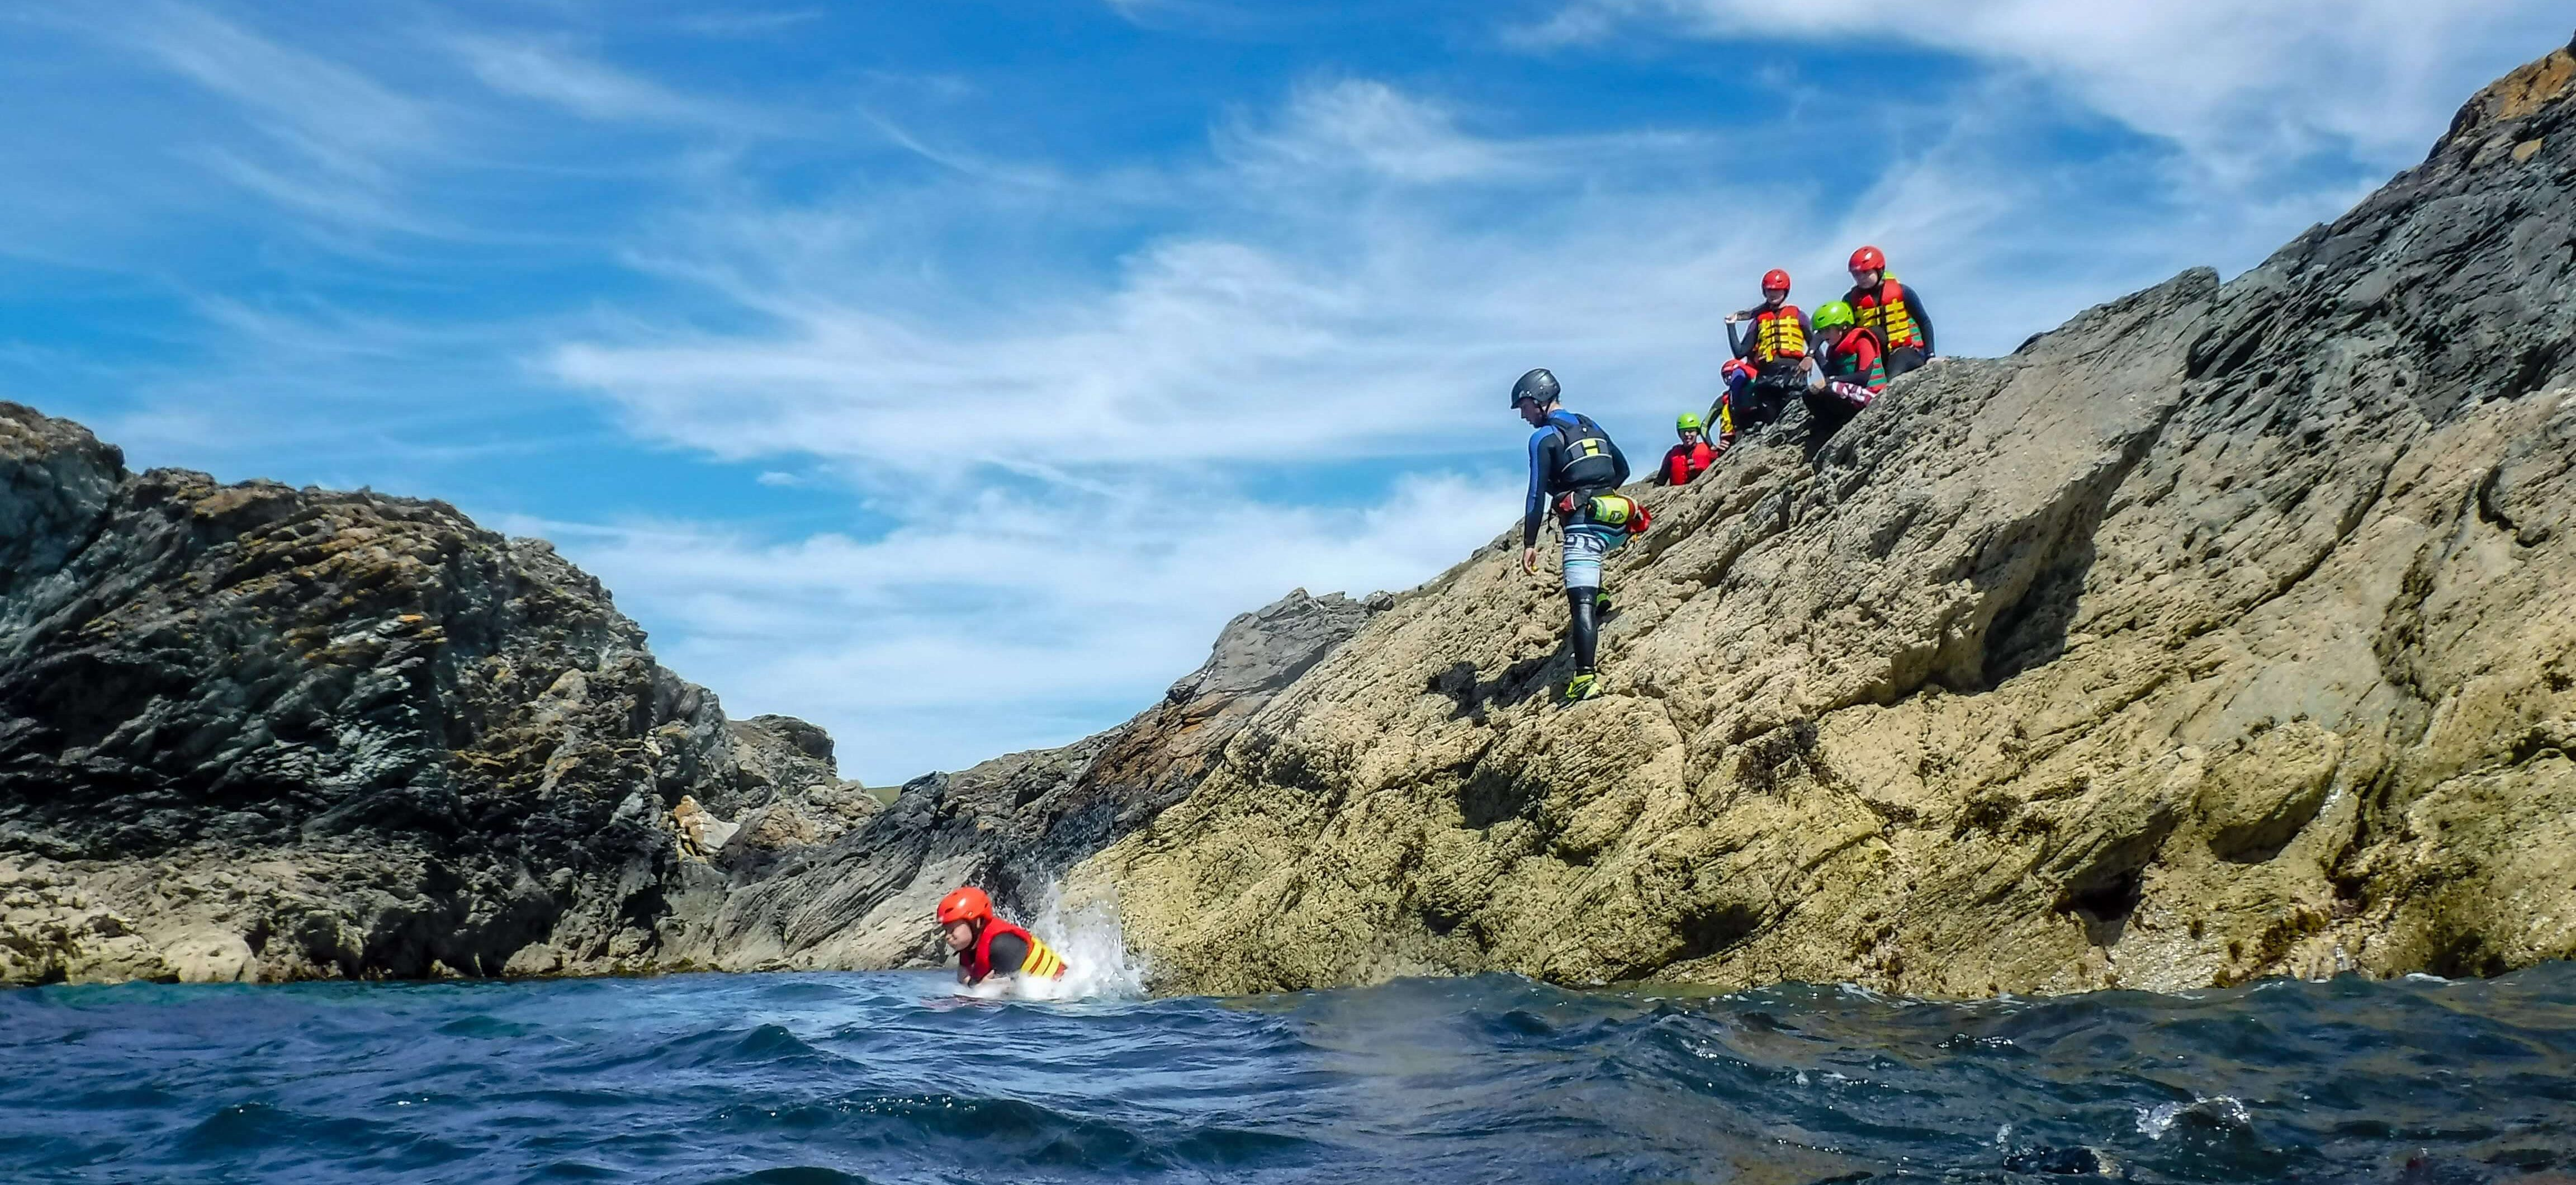 Coasteering is the perfect activity for corporate incentive travel